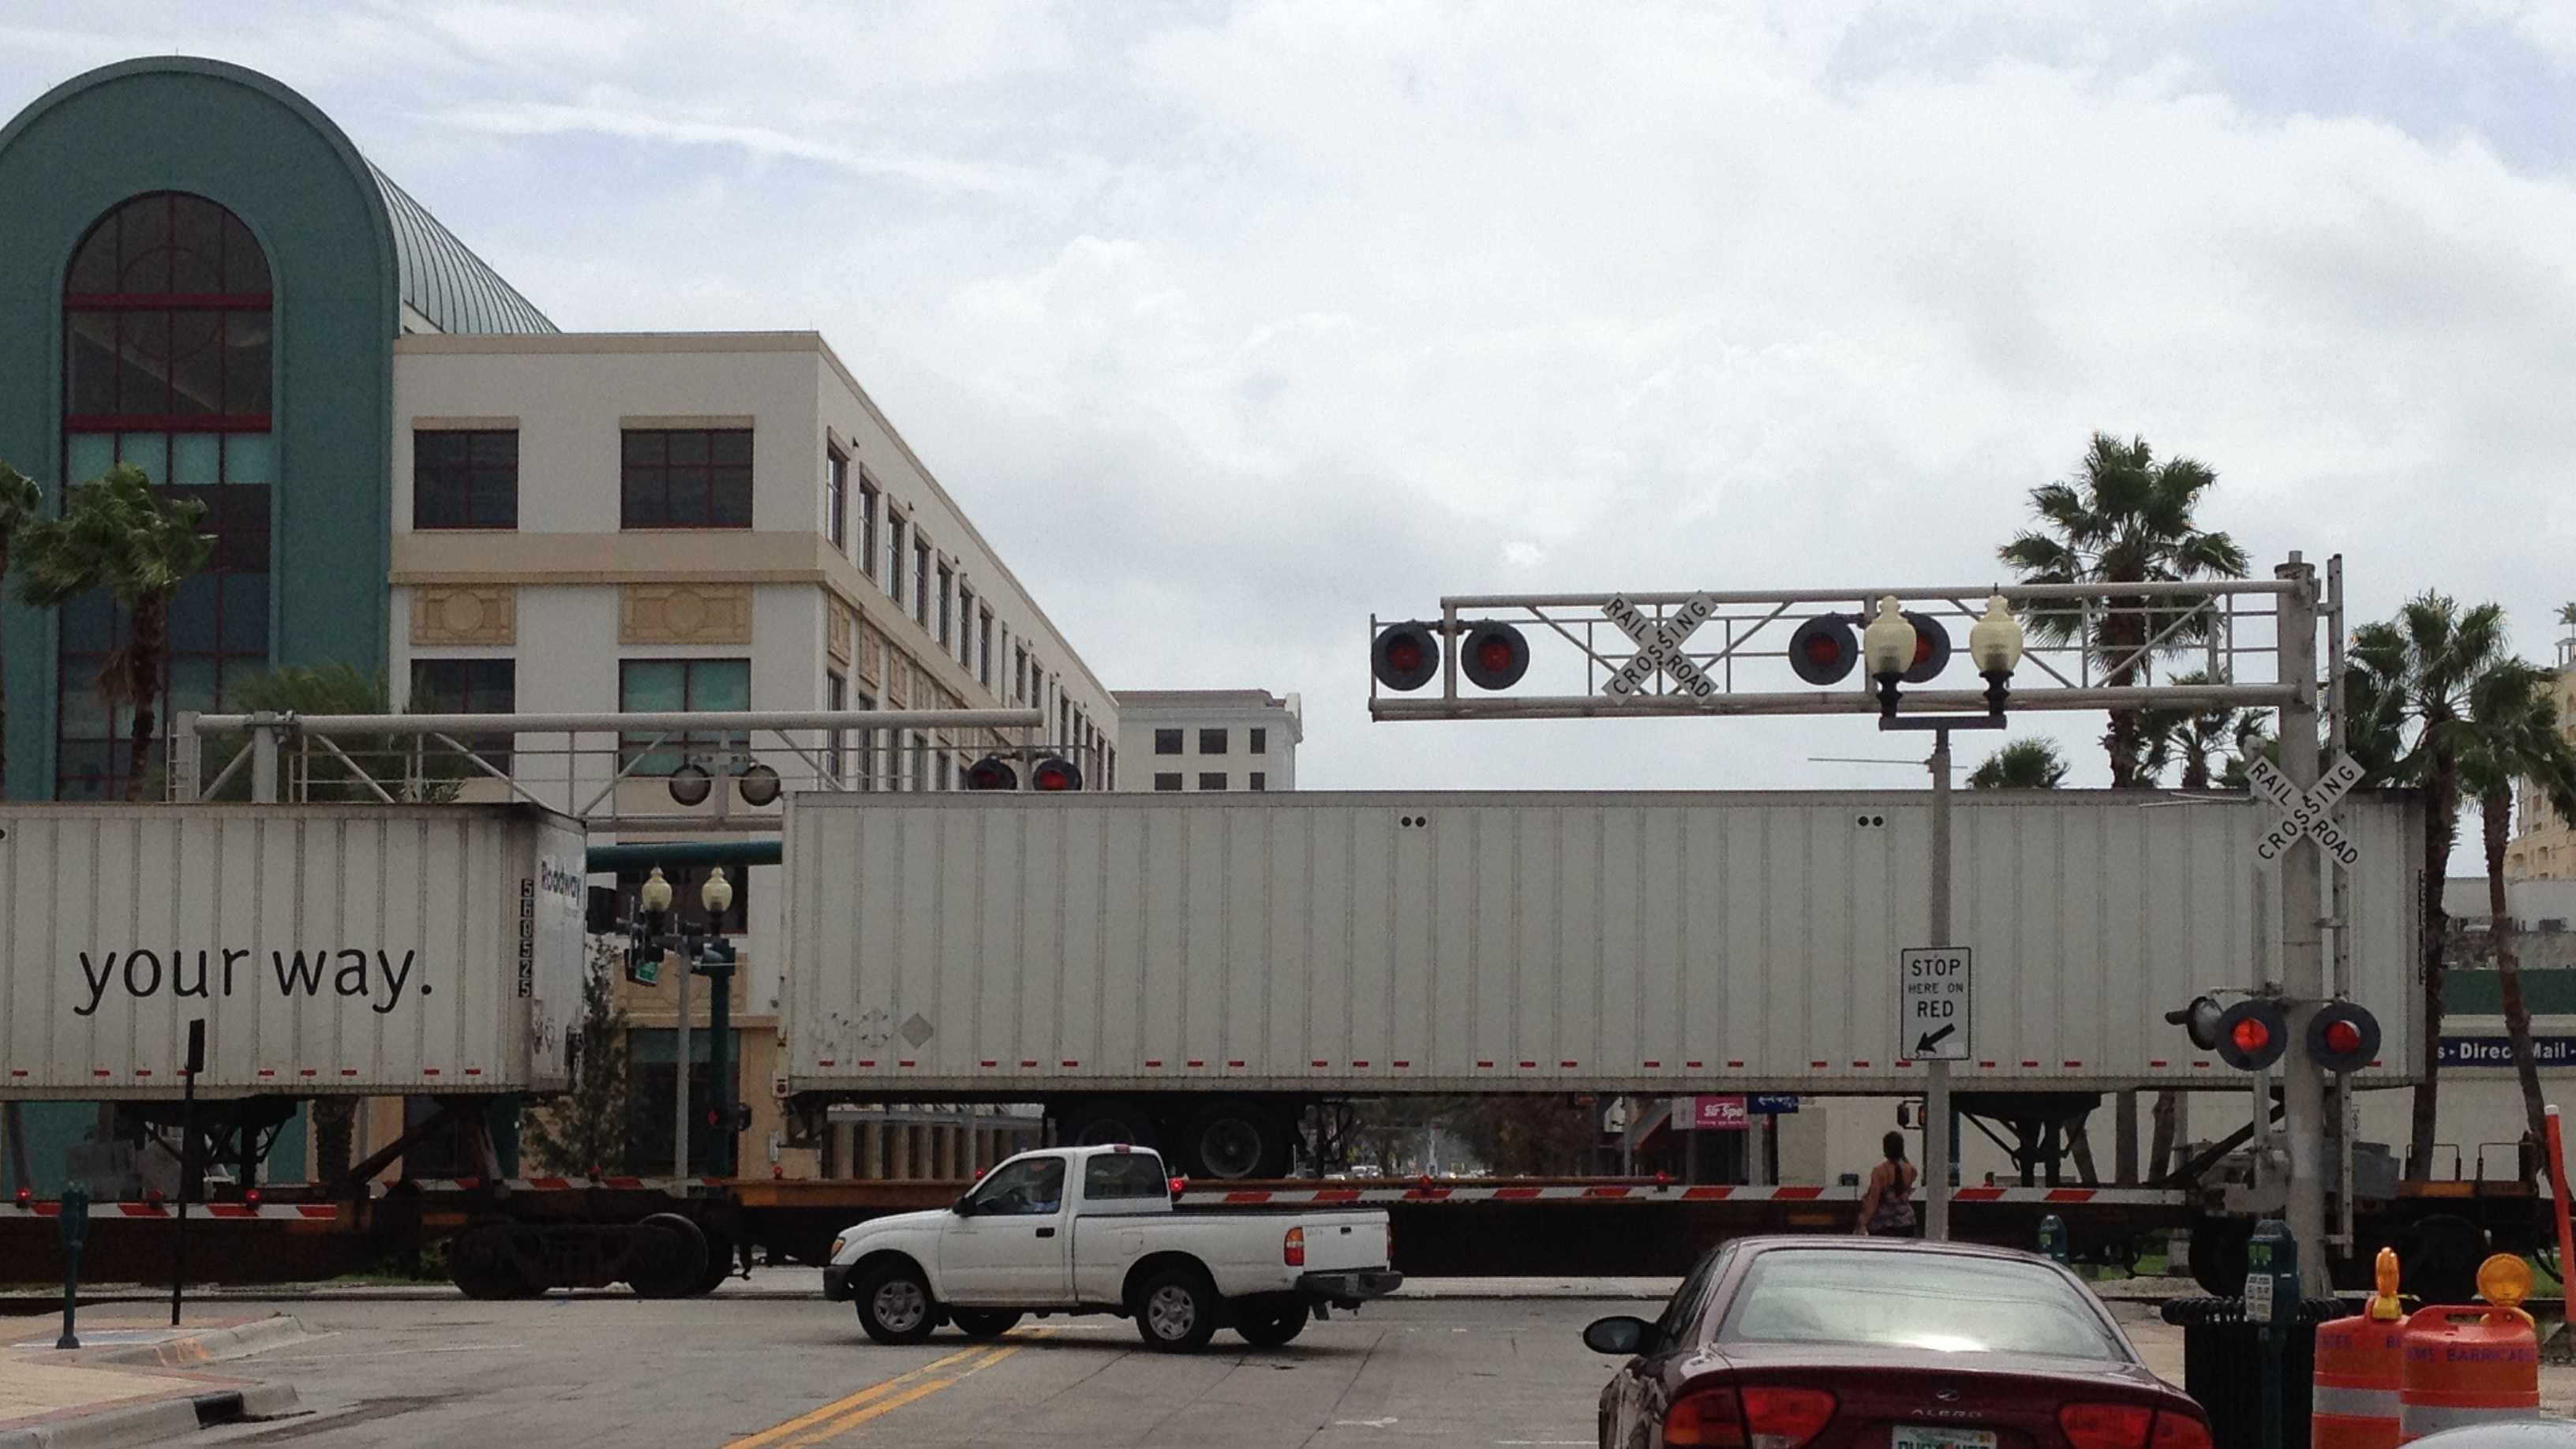 A freight train was stopped on the railroad tracks in downtown West Palm Beach, blocking traffic near the intersection of Clematis Street and Quadrille Street.